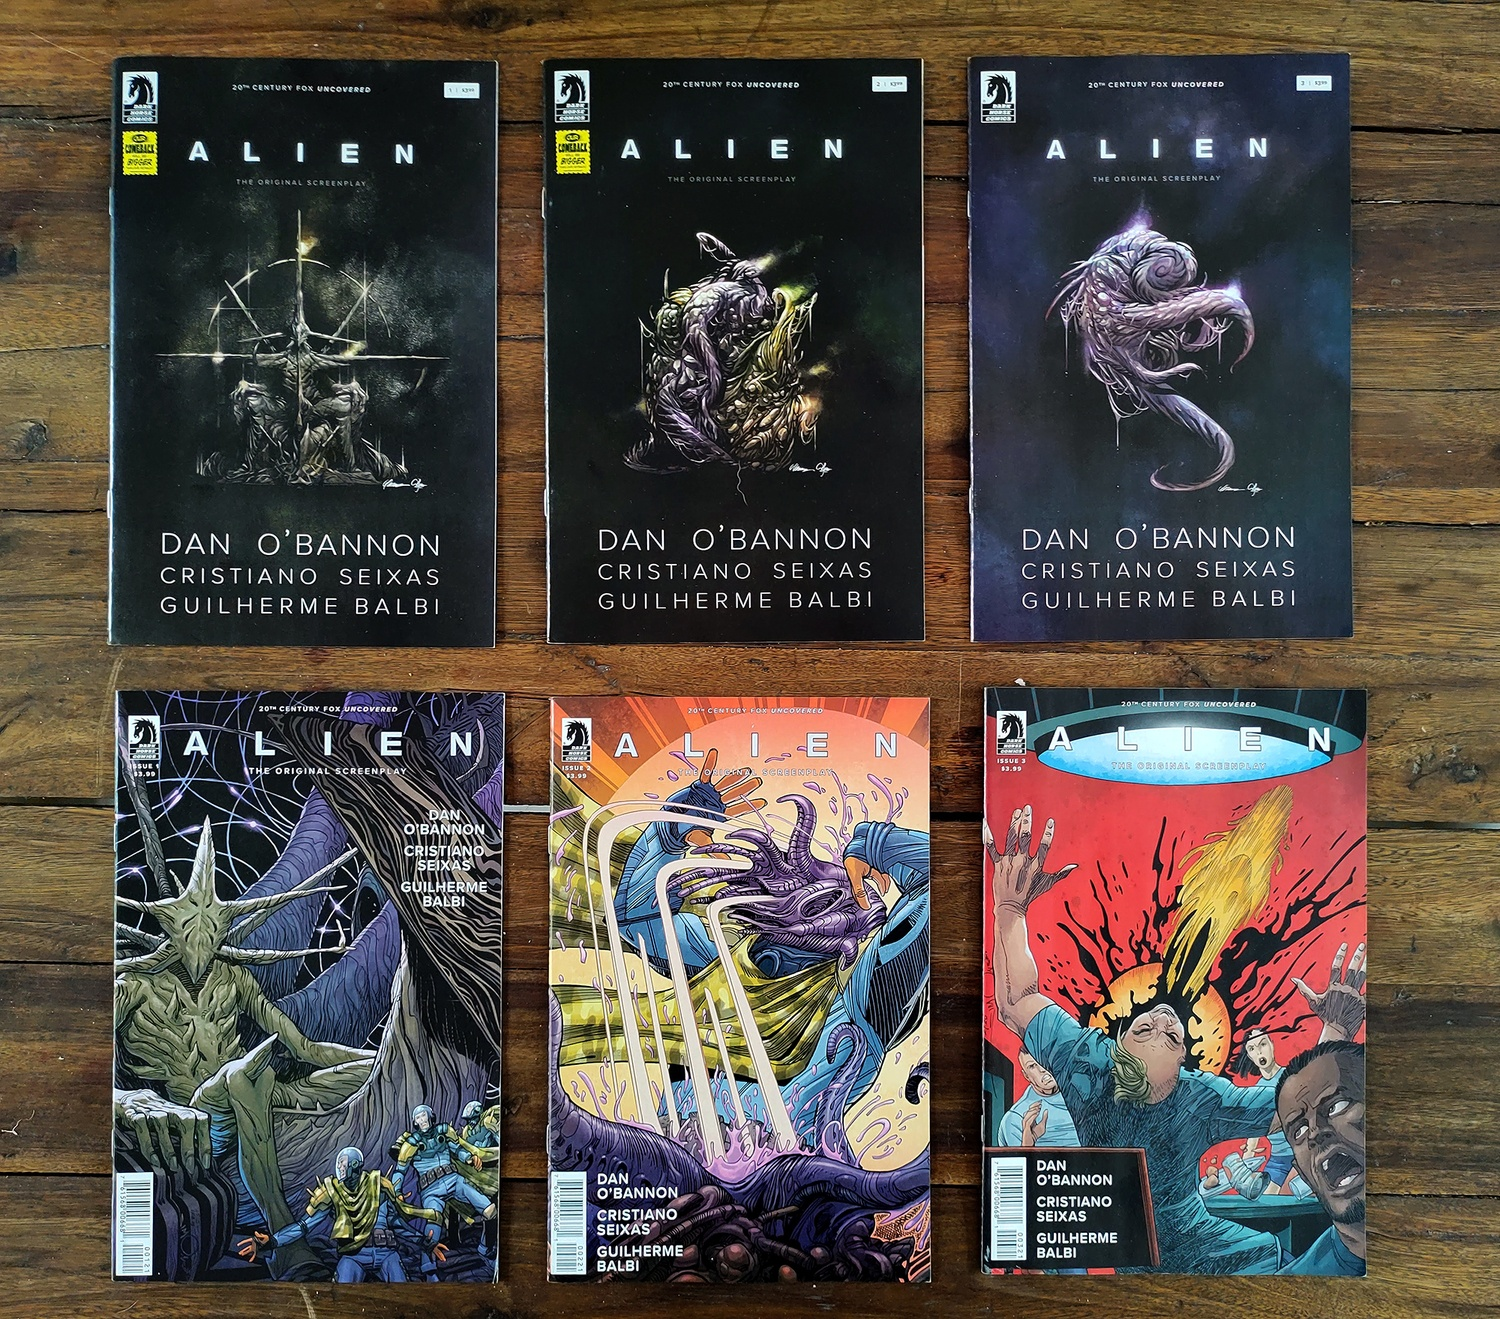 Alien The Original Screenplay: the first 3 issues!